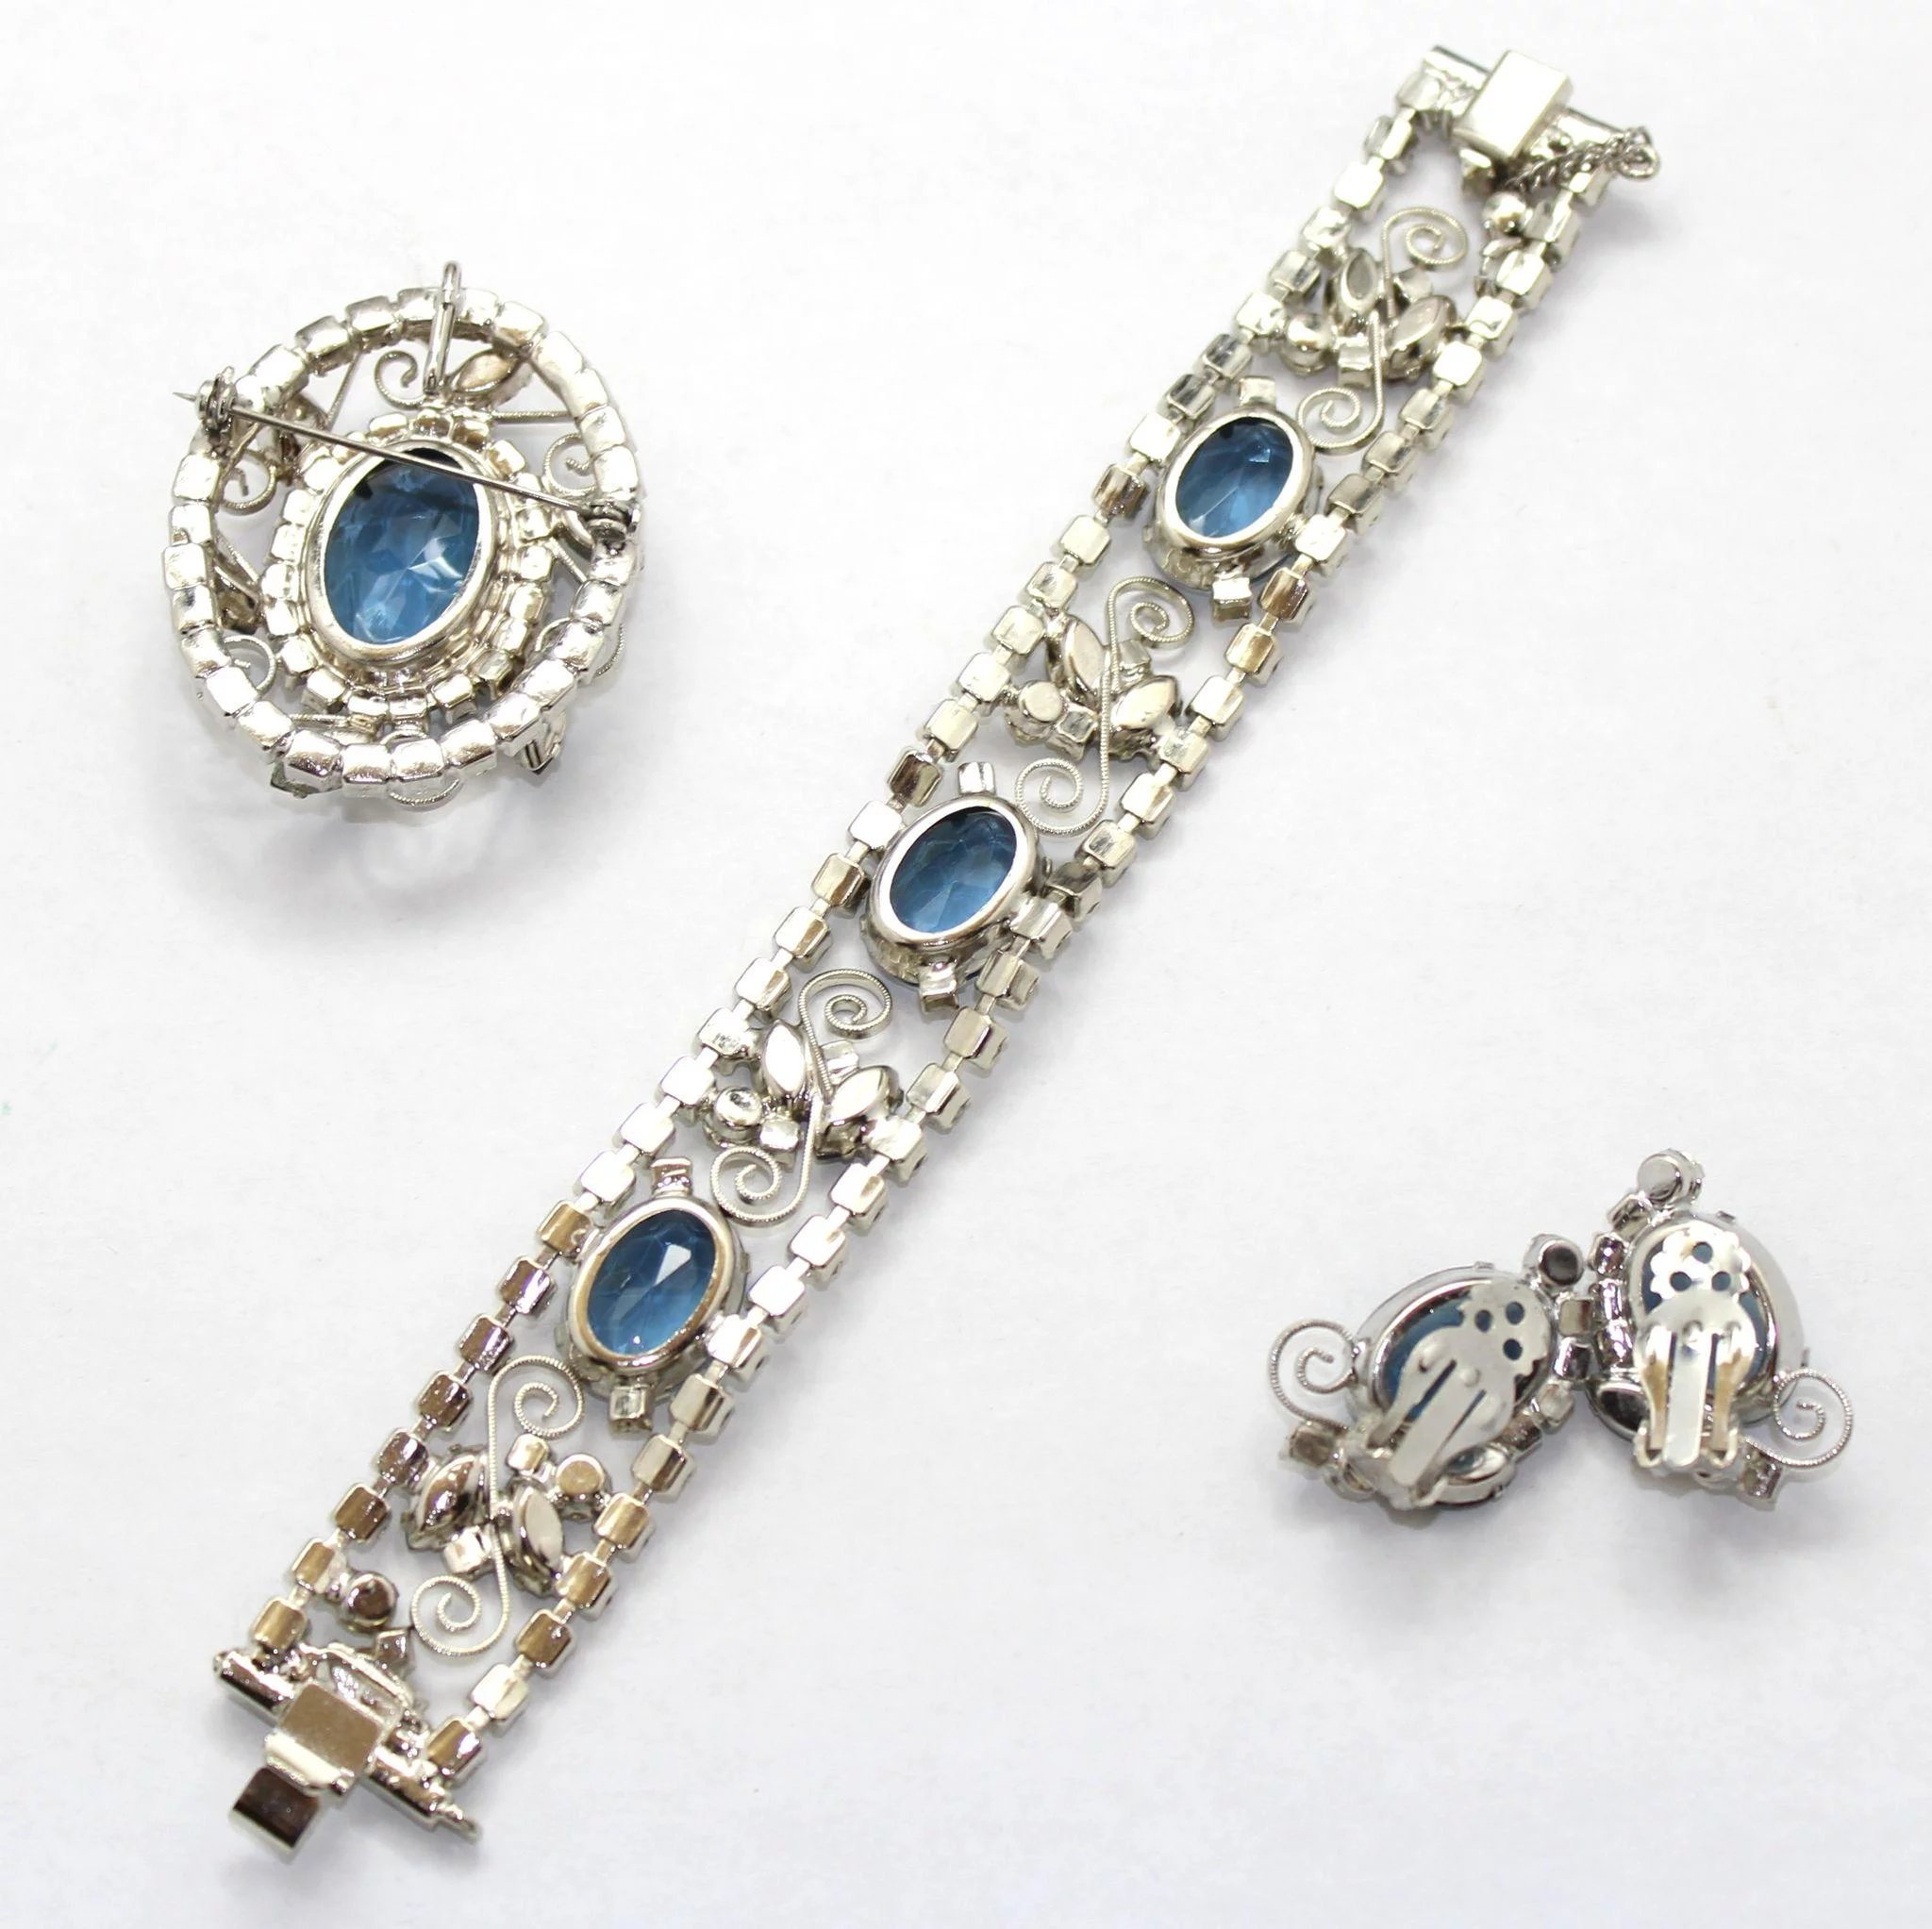 plated set pin and swarovski with brooch clear pinwheel rhodium sapphire sherman